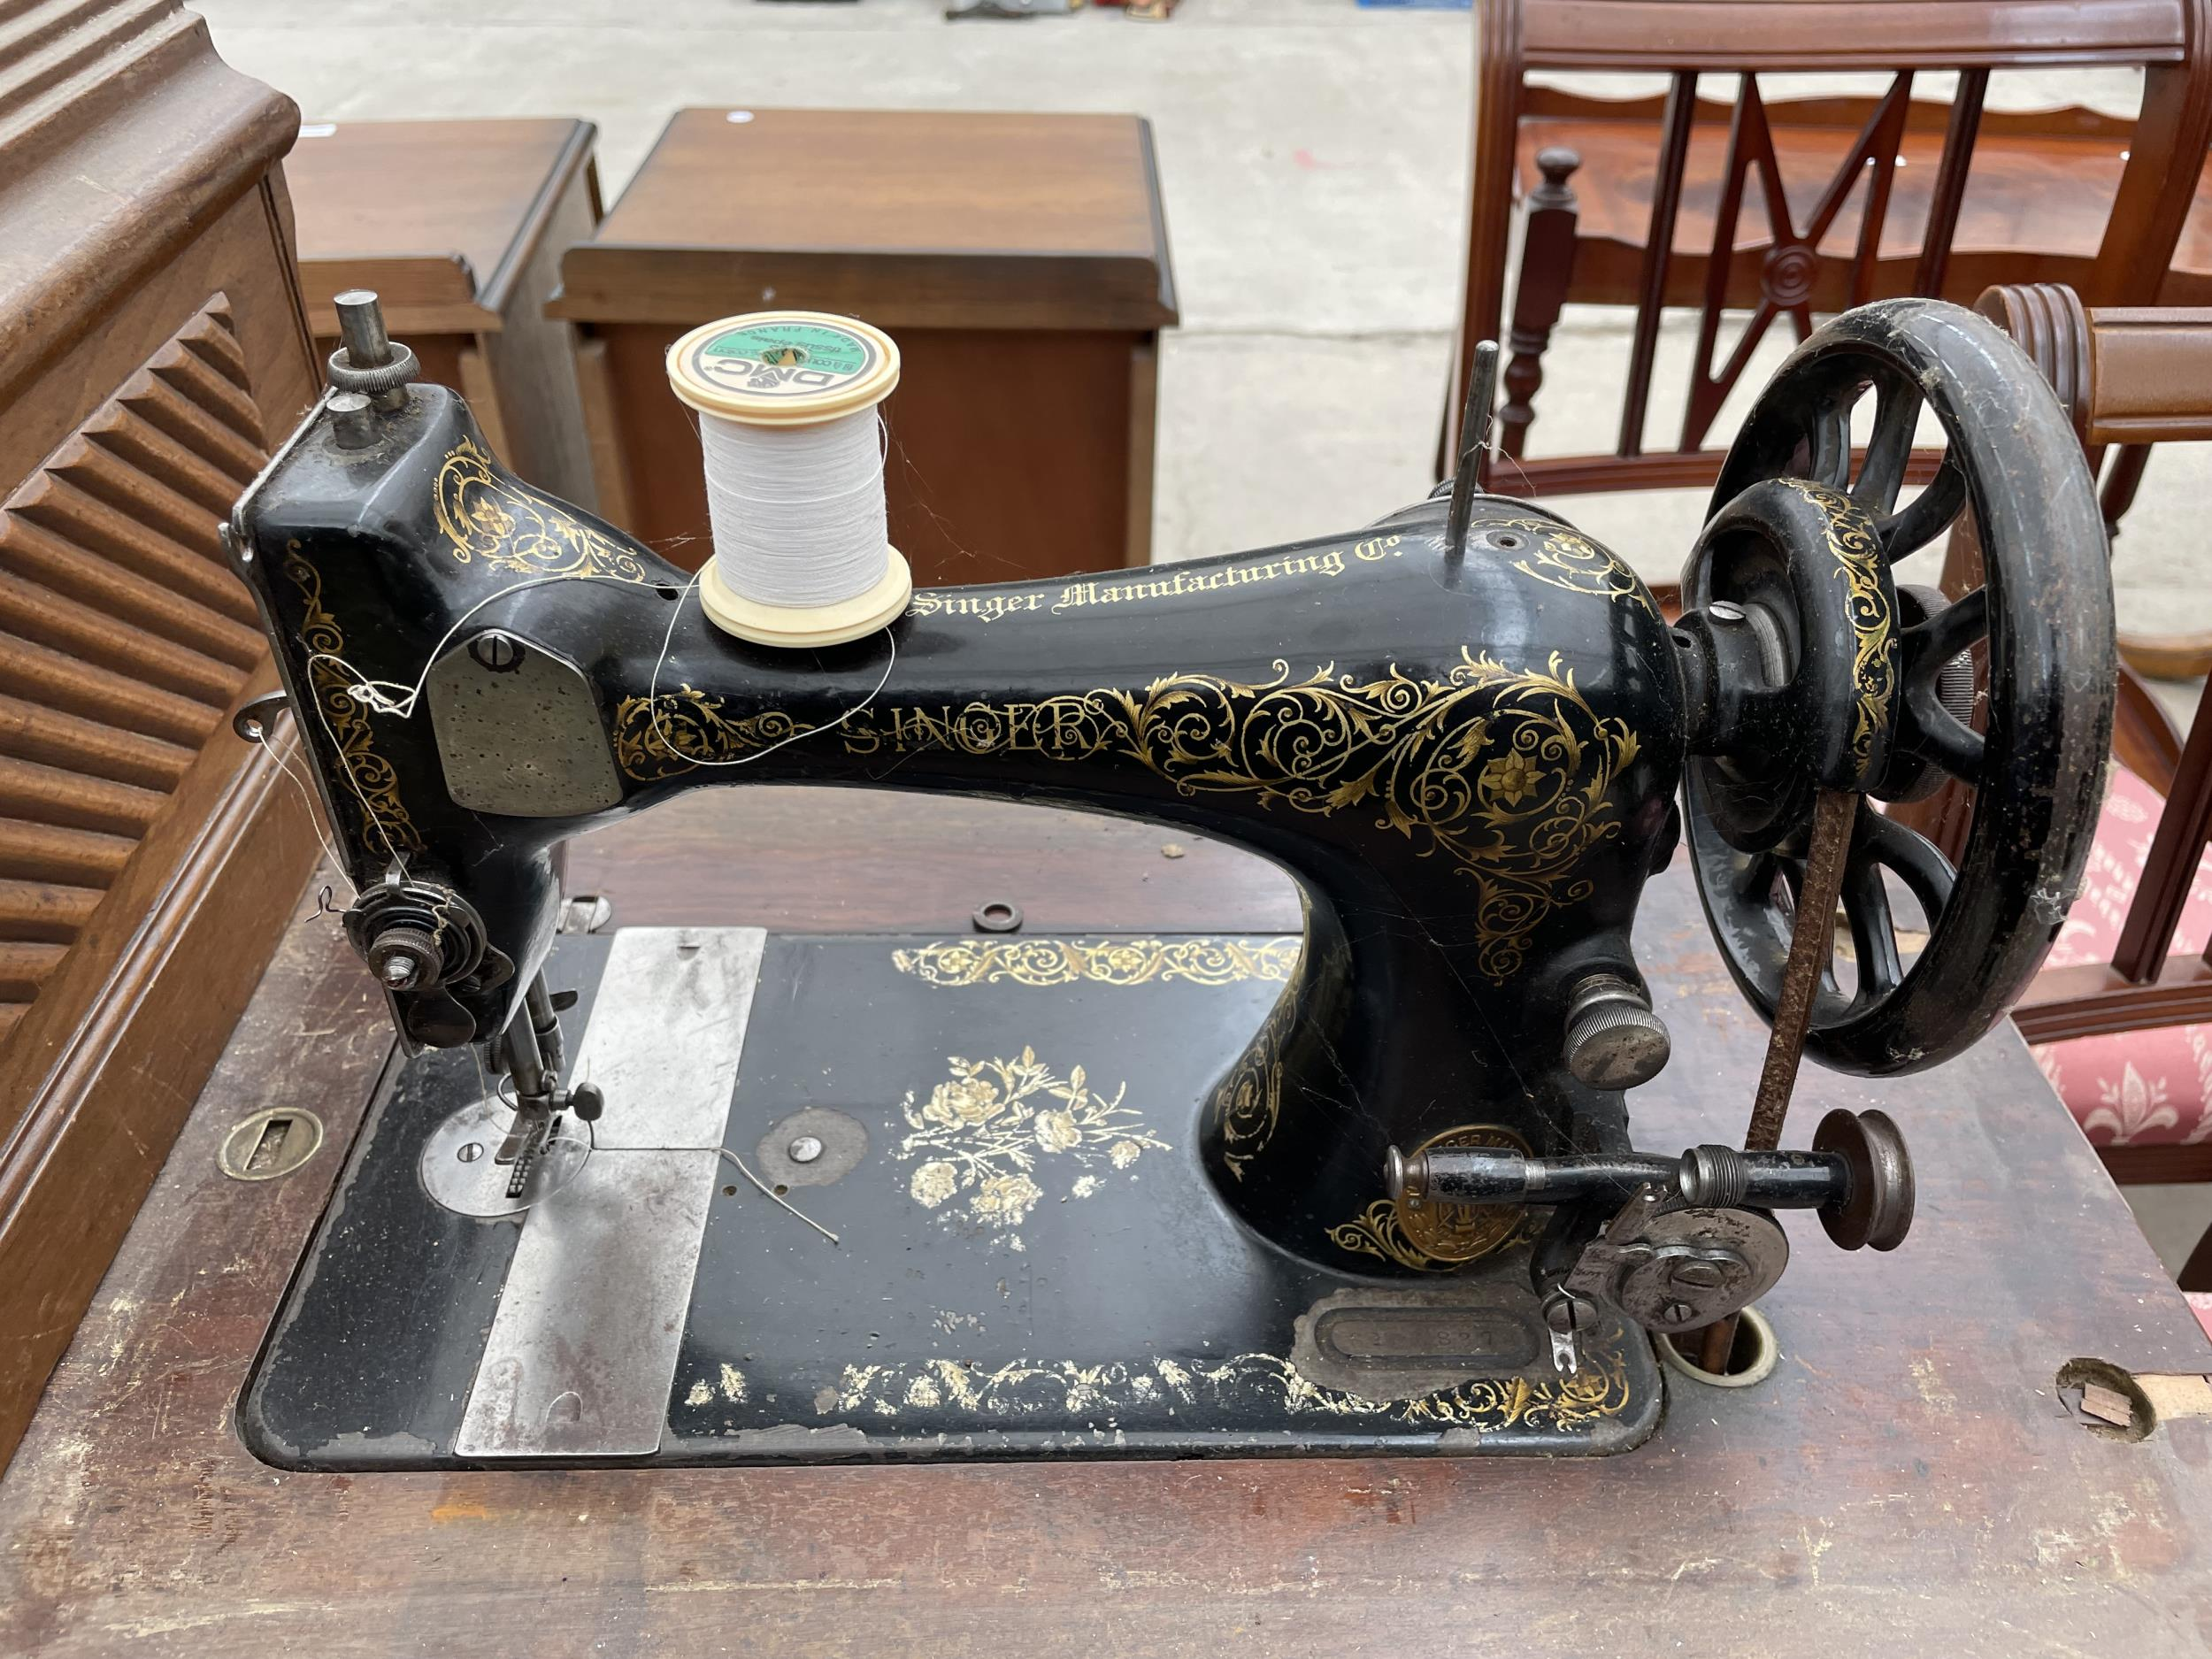 A SINGER TREADLE SEWING MACHINE - Image 2 of 4